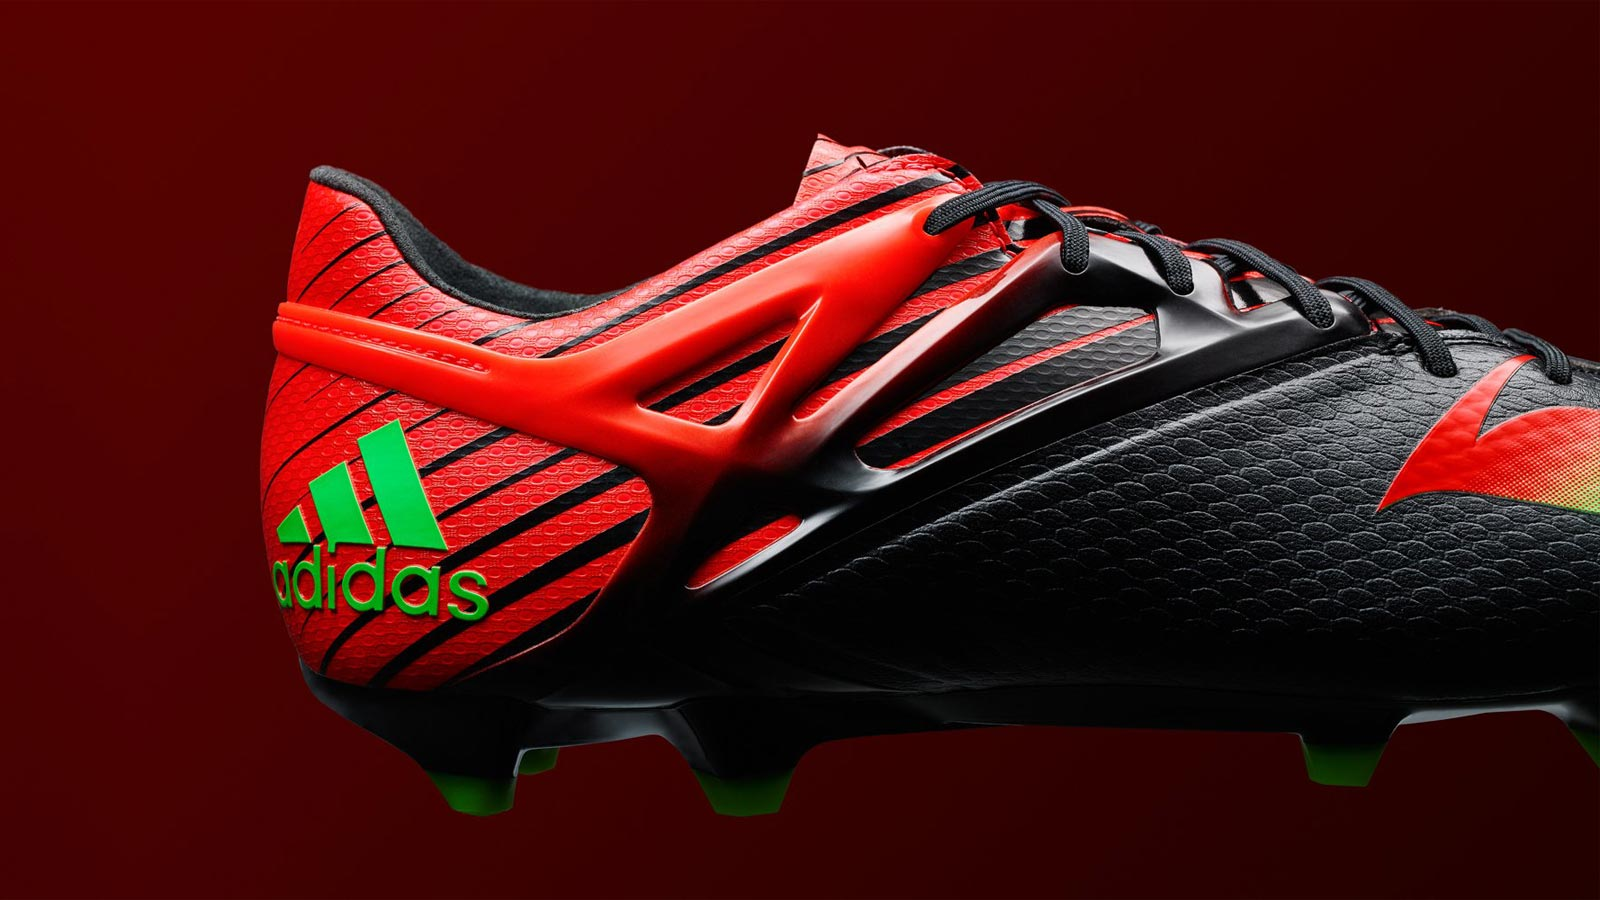 Striking Adidas Messi 2015-2016 Boots Released